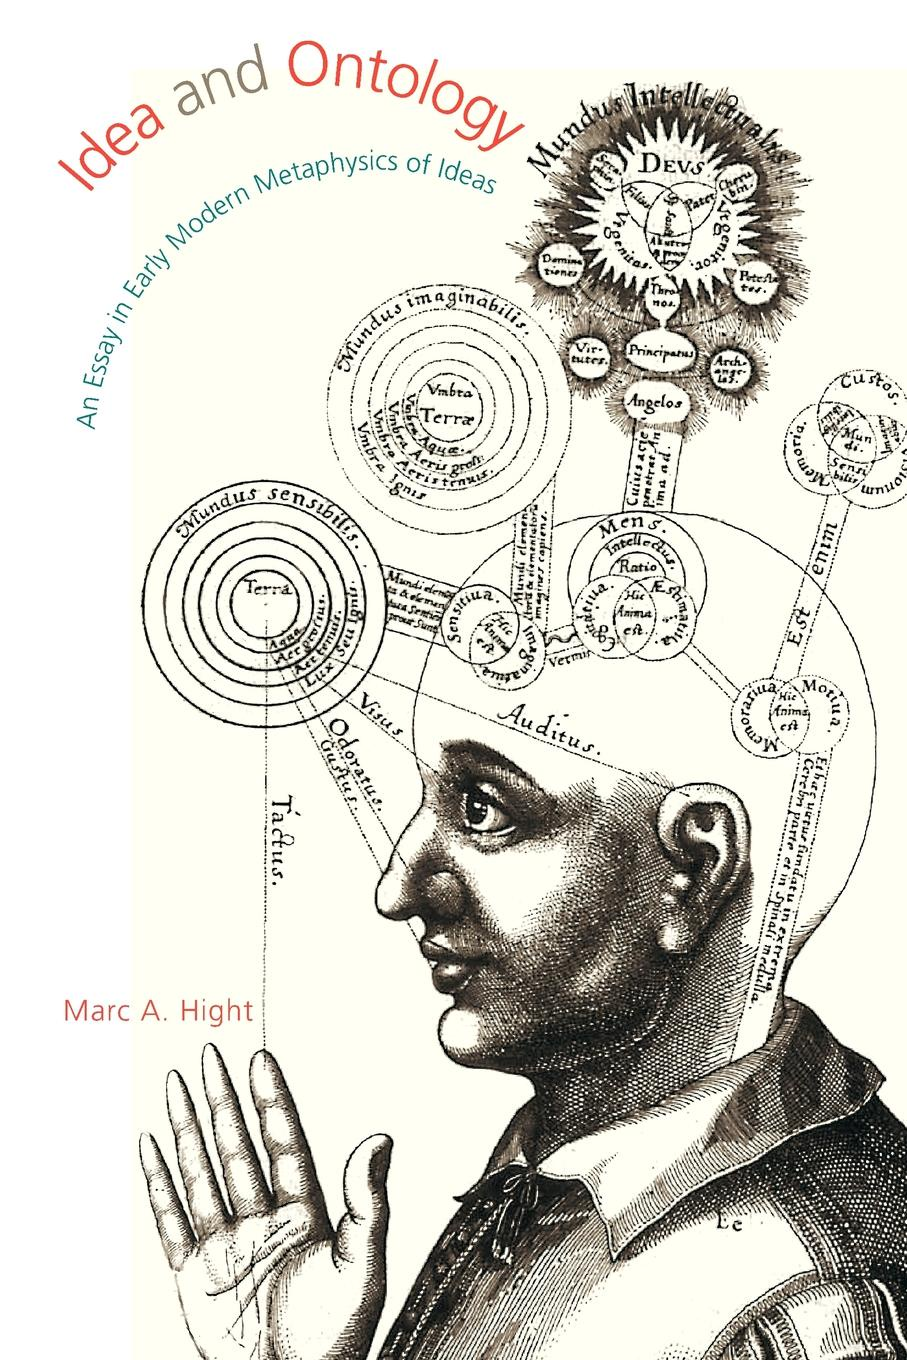 Marc A. Hight Idea and Ontology. An Essay in Early Modern Metaphysics of Ideas daniel clark walsh the metaphysics of ideas according to duns scotus